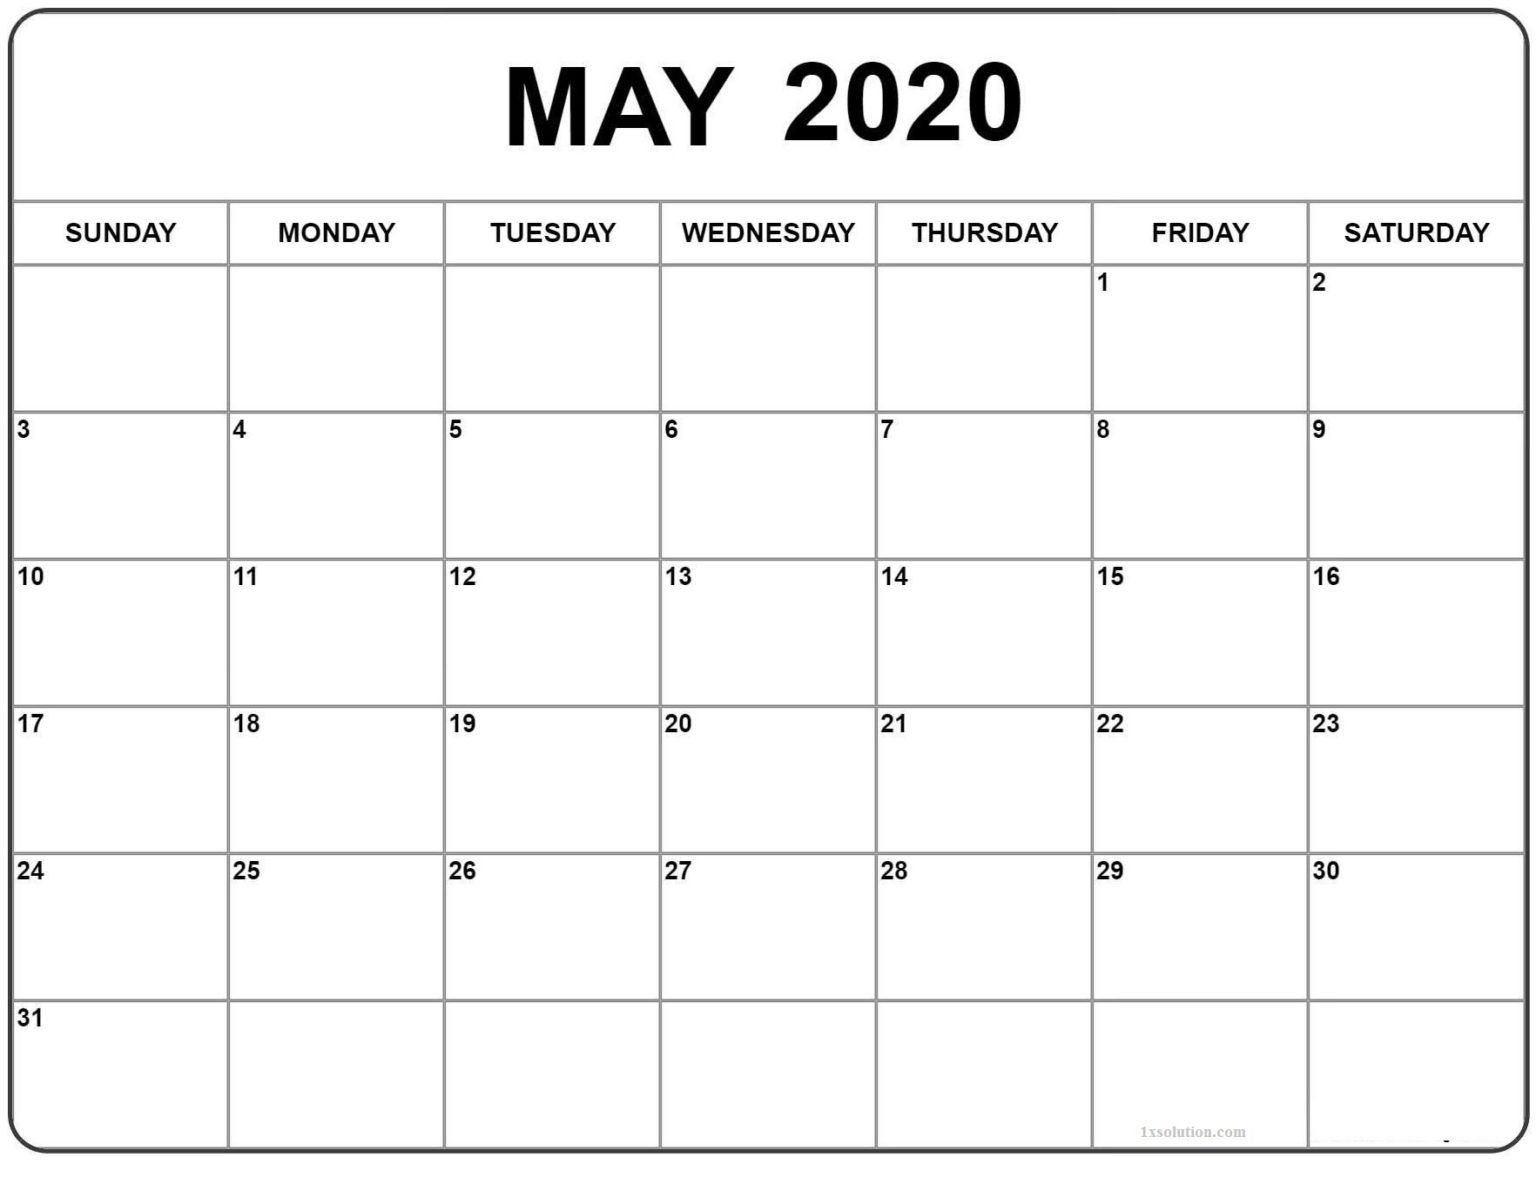 Download Blank May 2020 Calendar For Your Daily Schedule In